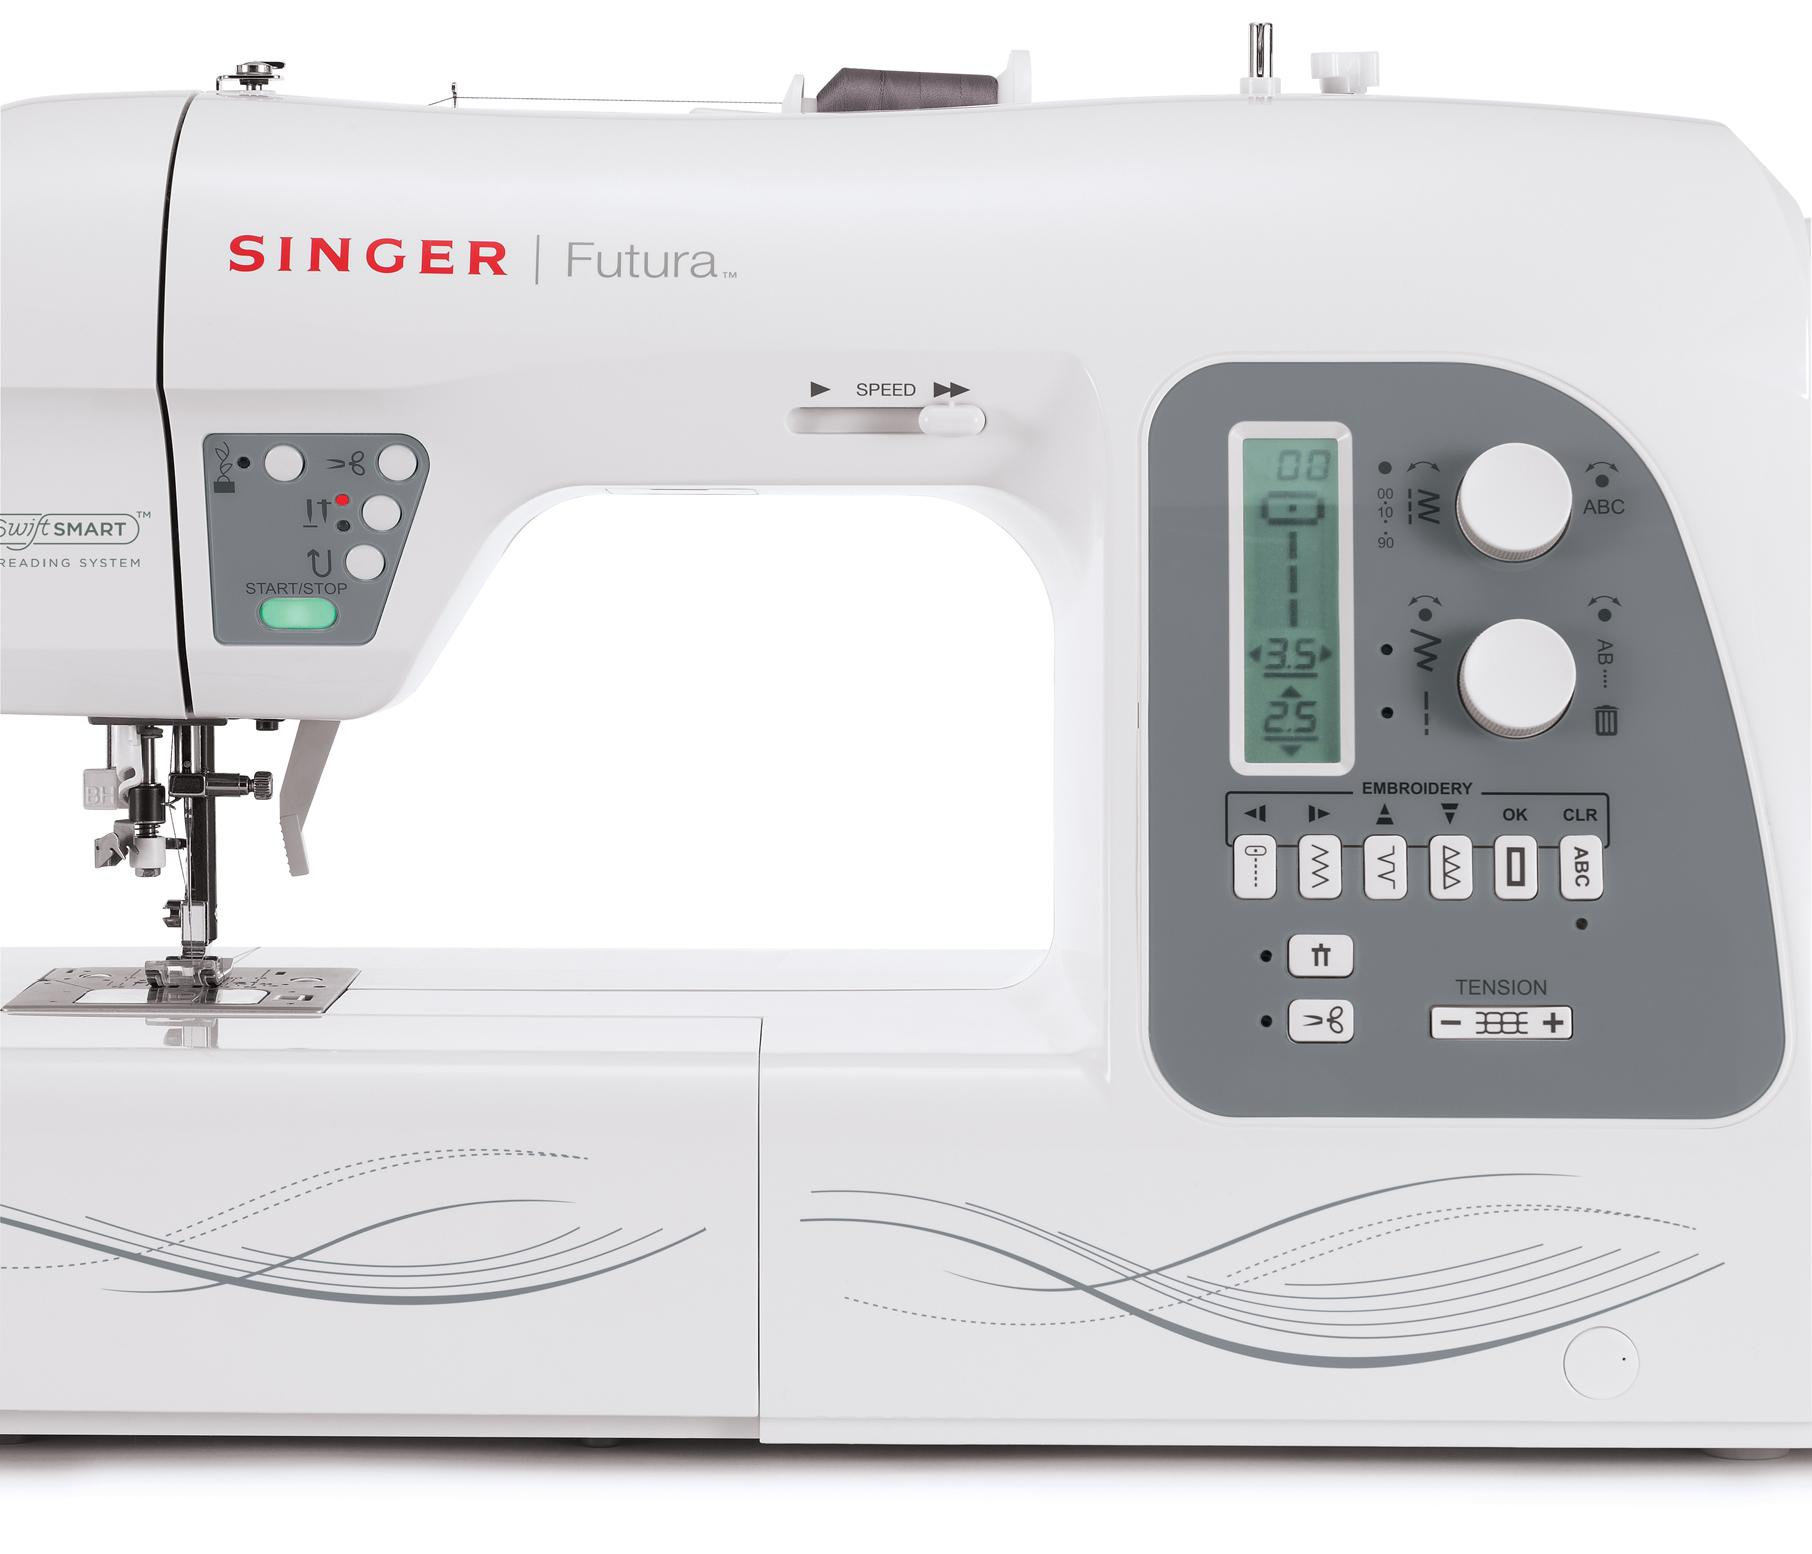 550 embroidery machine